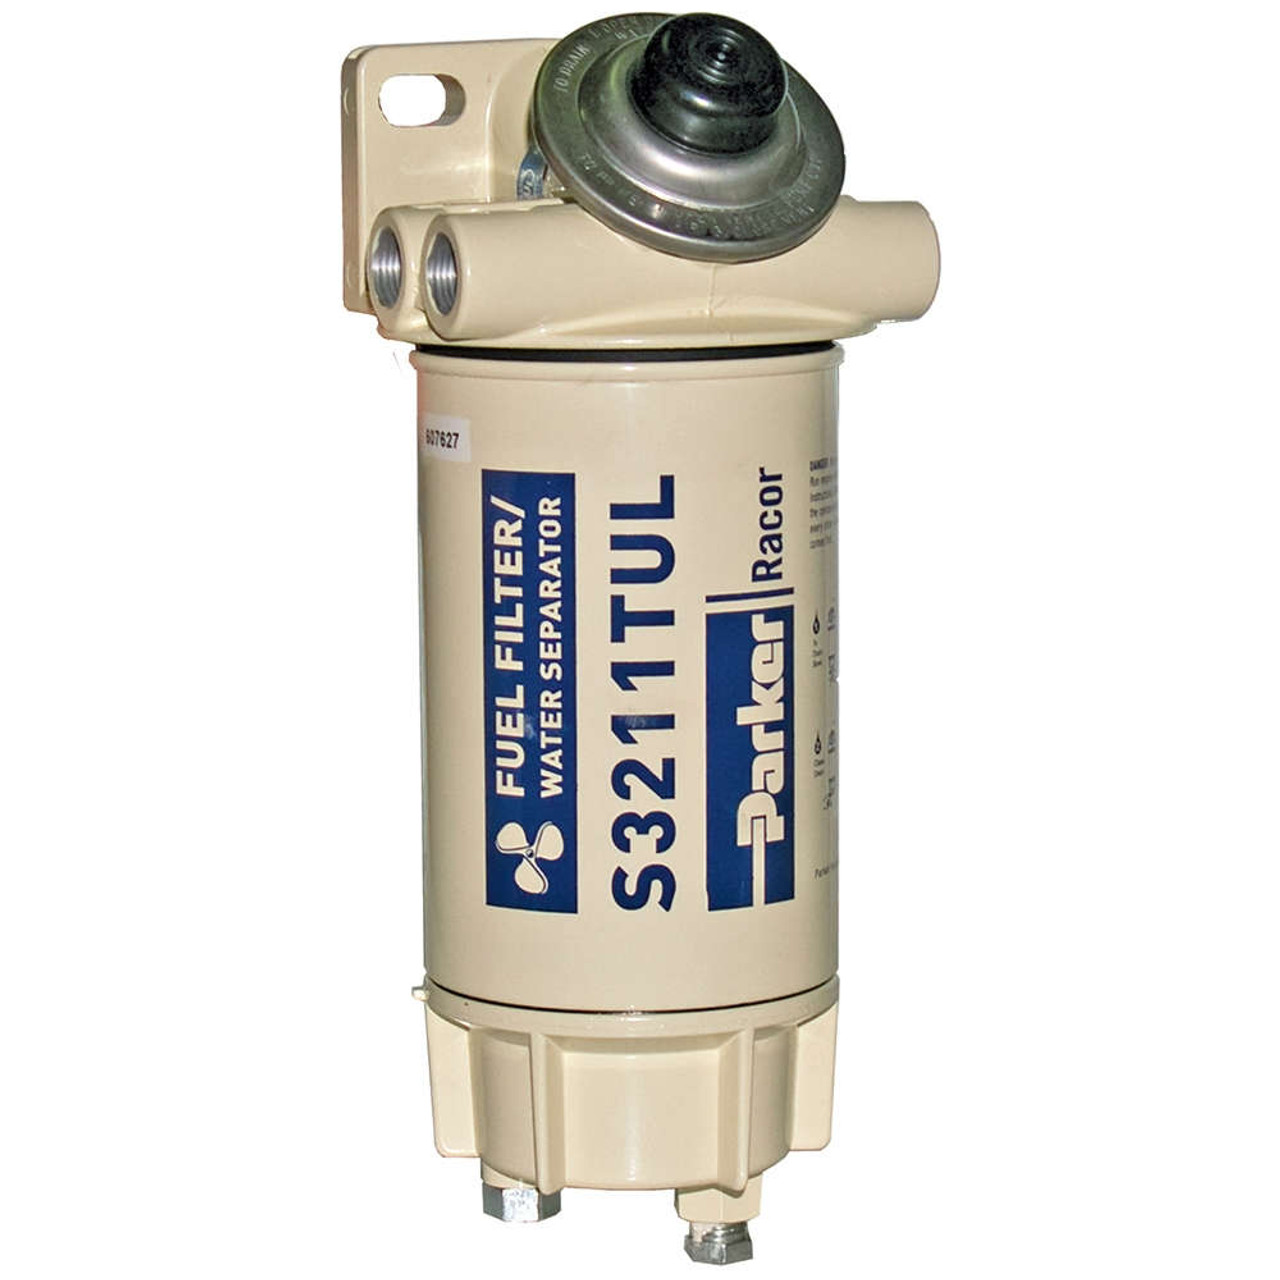 hight resolution of racor aquabloc marine 3 8 in 60 gph spin on diesel fuel filter water separator assembly 6 qty john m ellsworth co inc